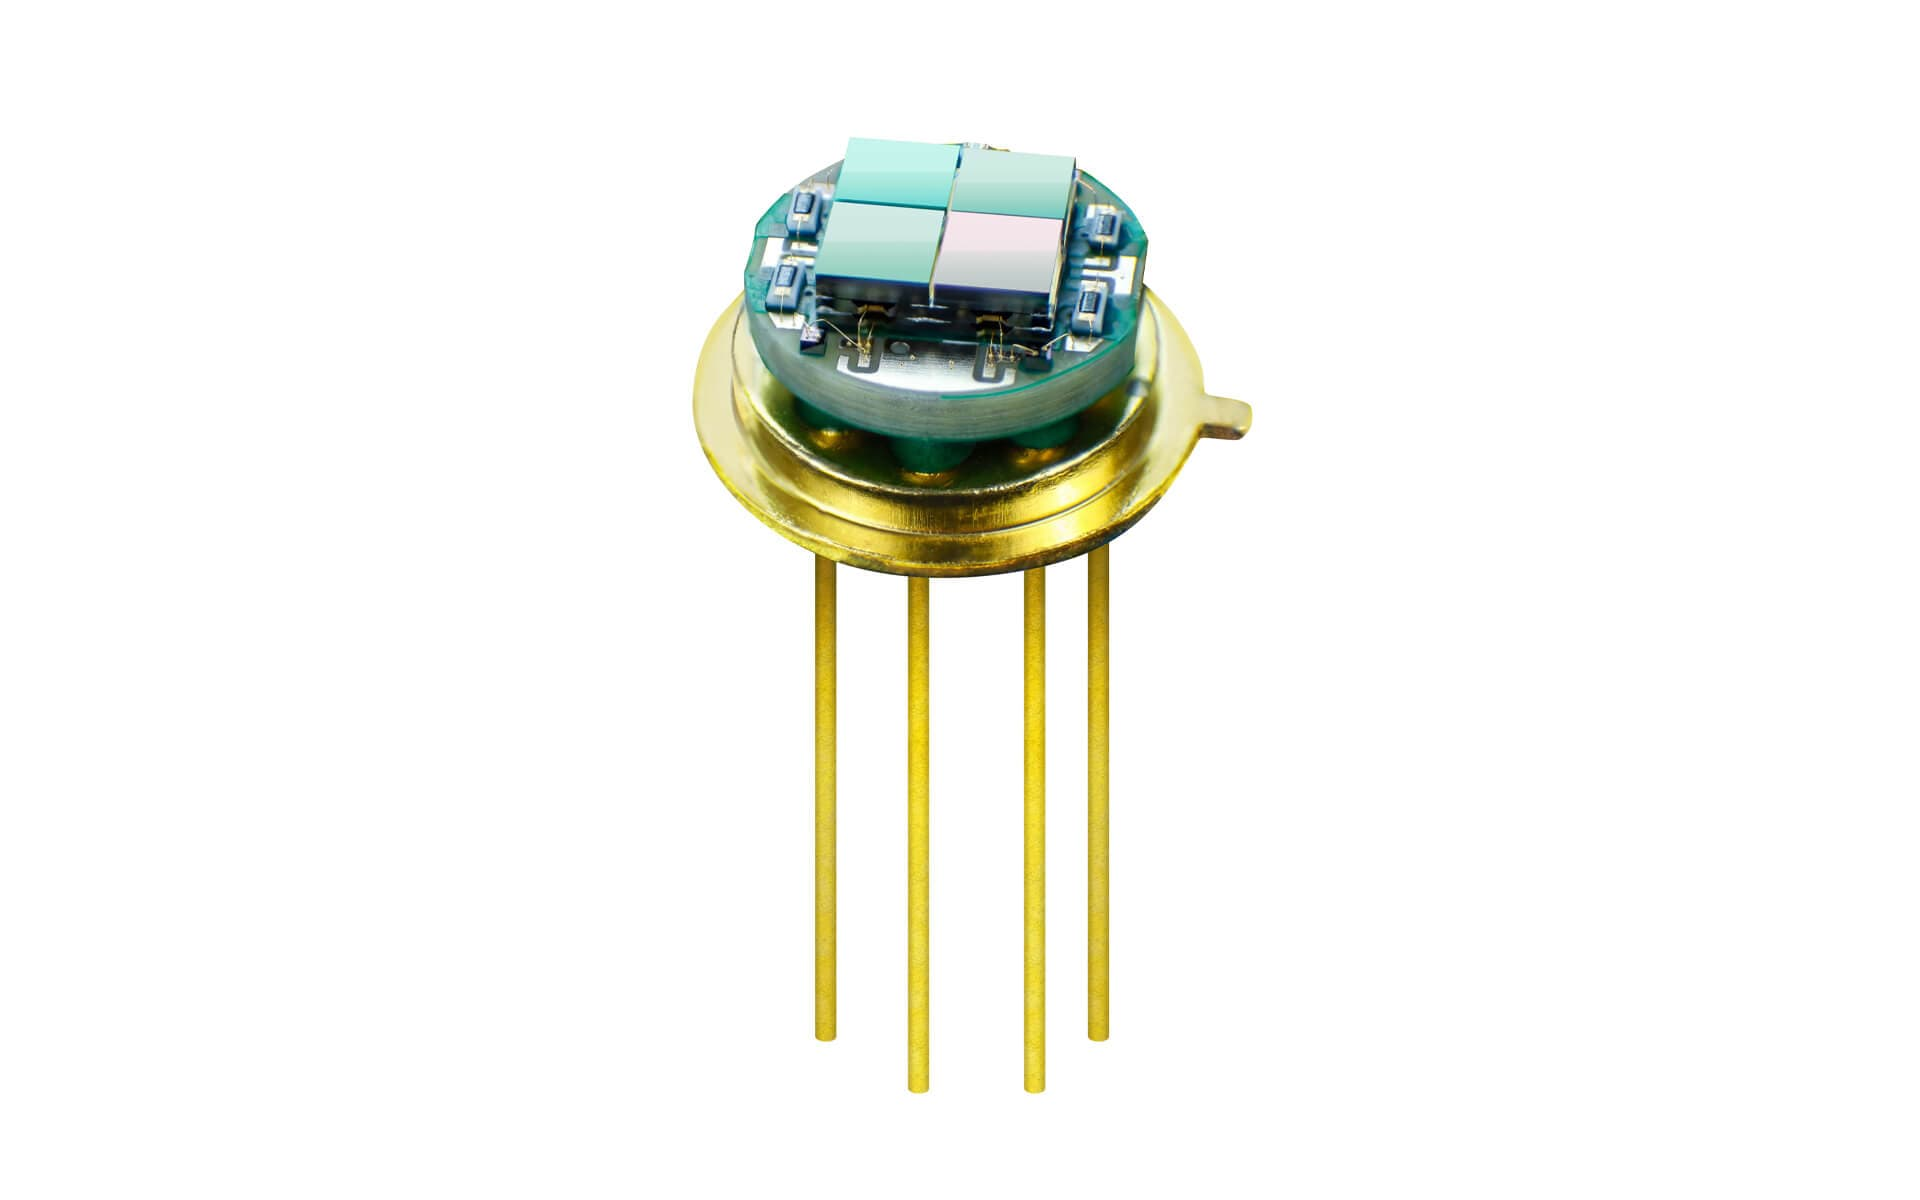 PYROMID® multi channel detector LRM-284 from InfraTec